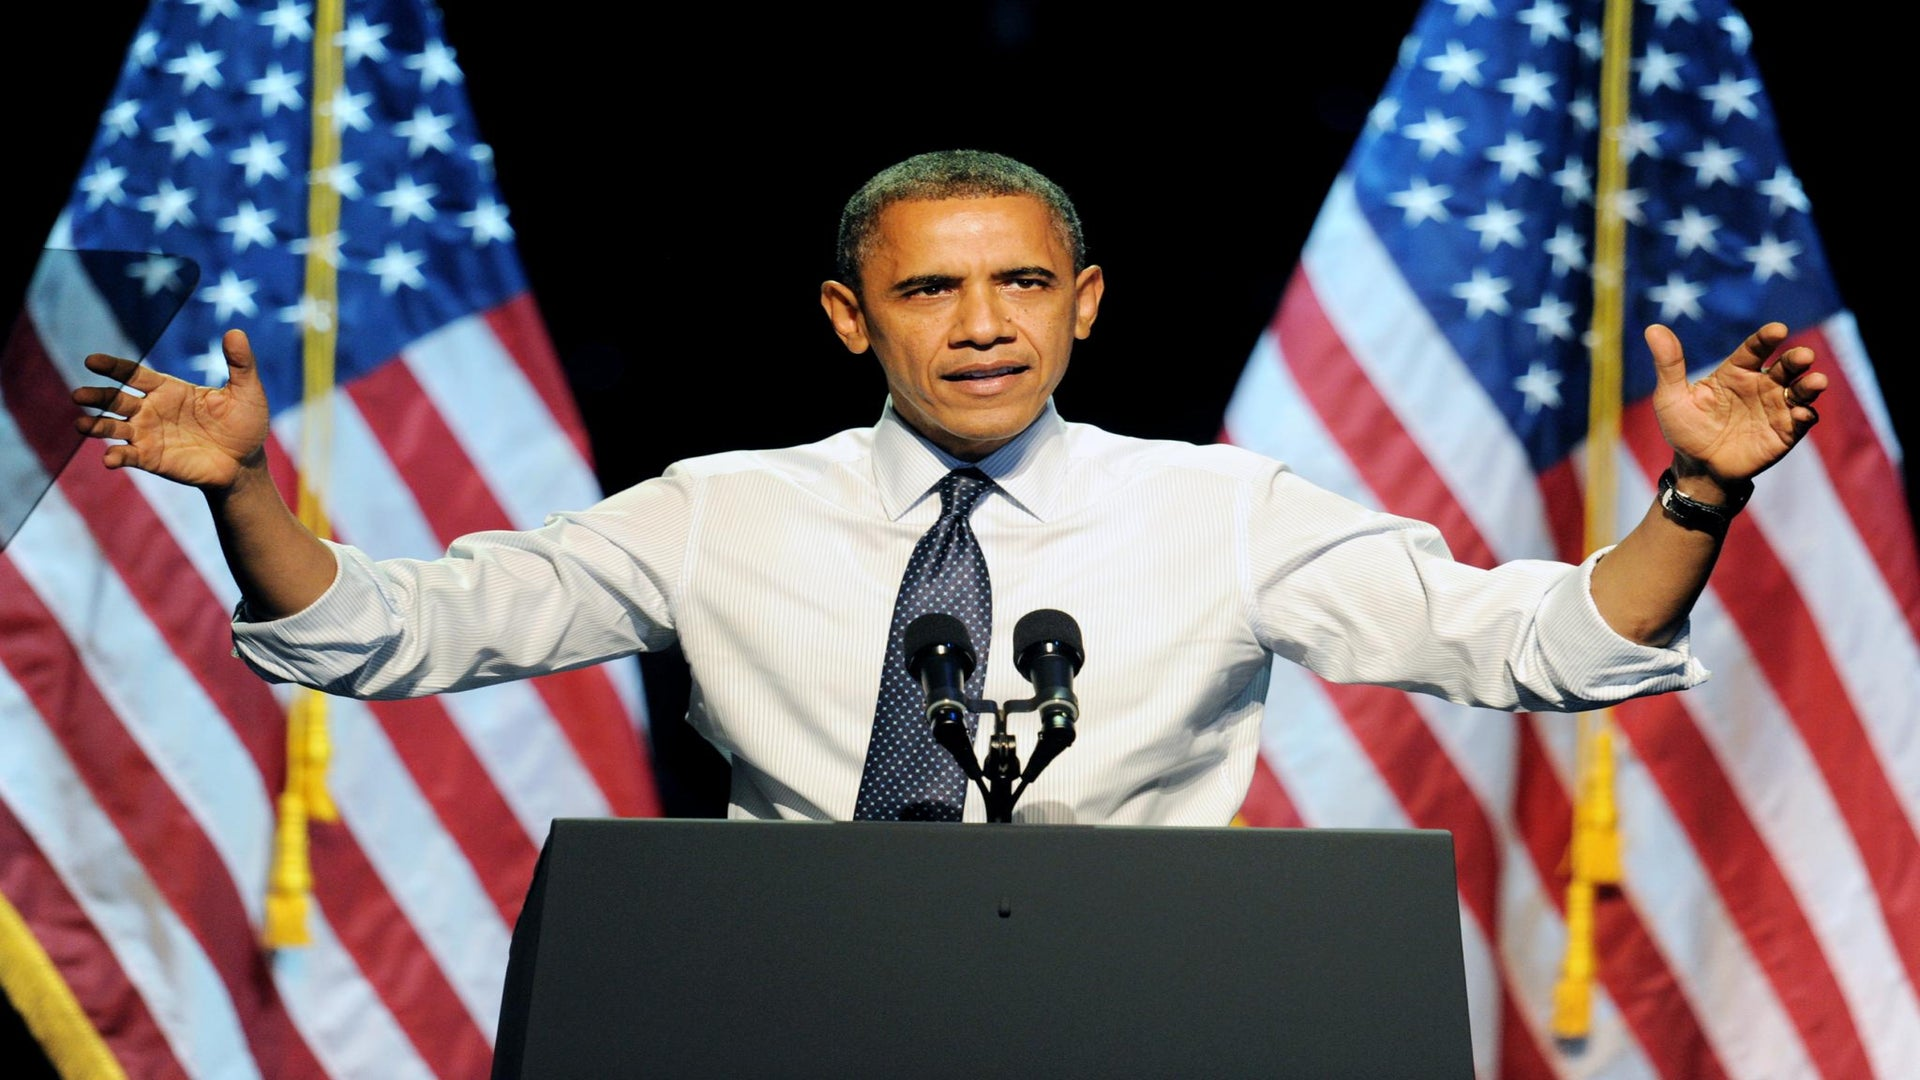 President Obama's First Post-Debate Interview to Air Tonight